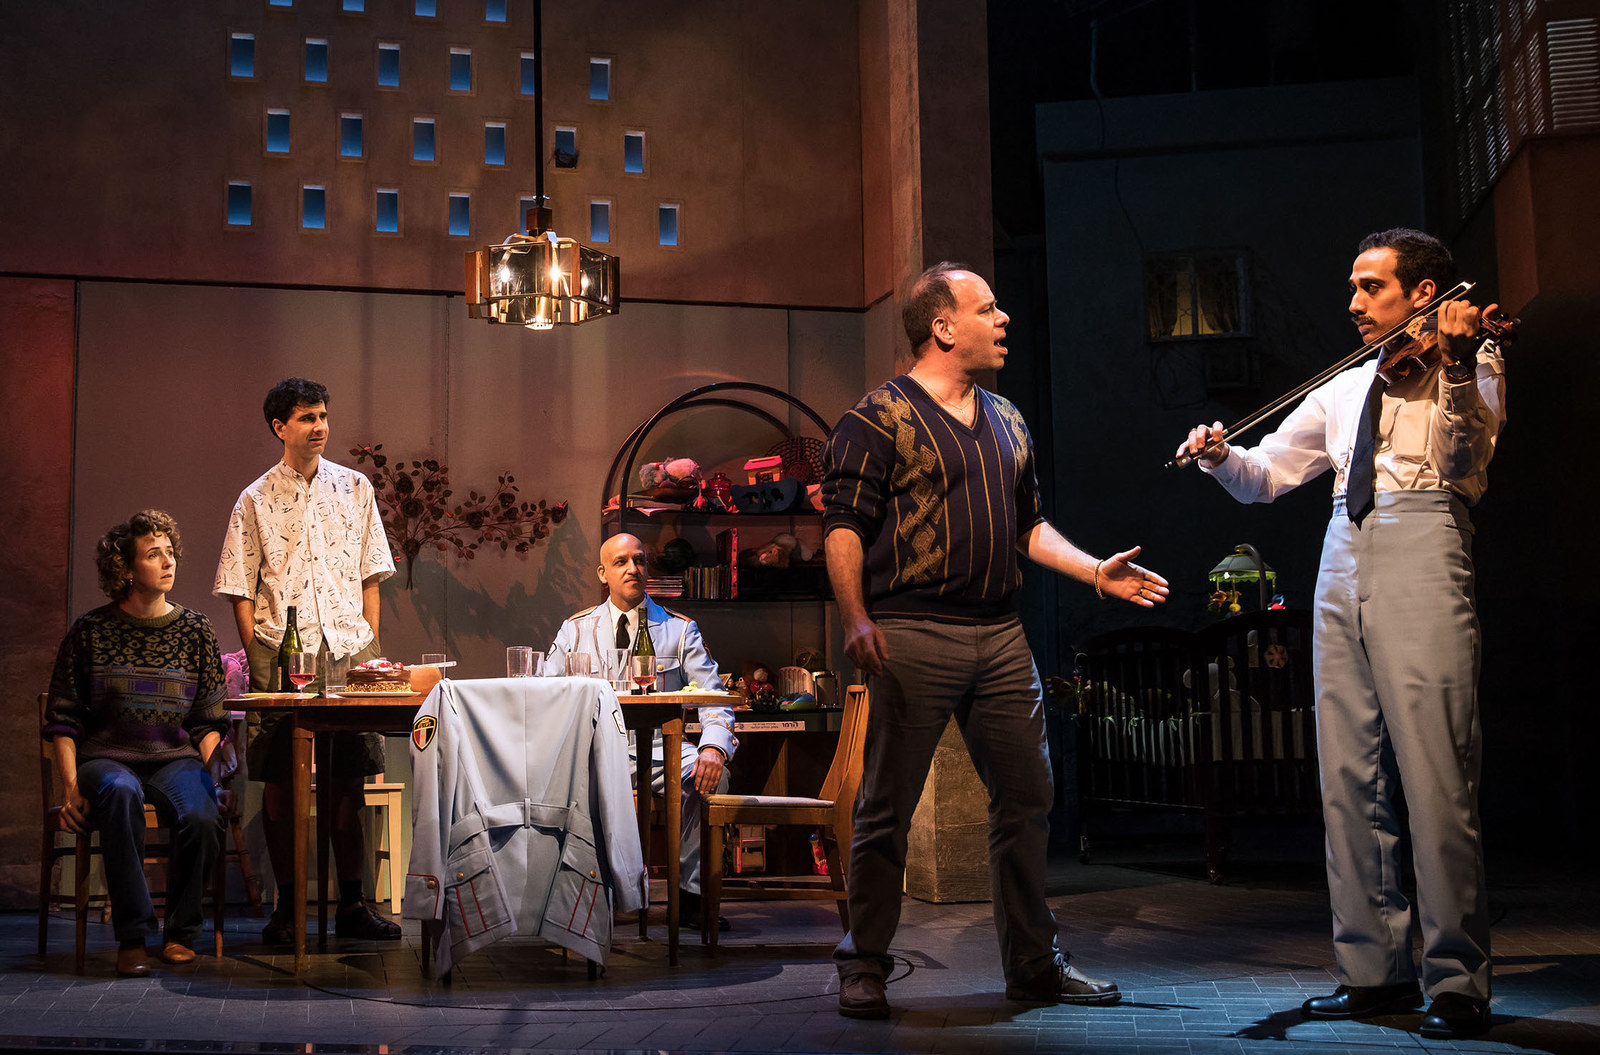 This Hit Musical Is Breaking New Ground For Middle Eastern Representation